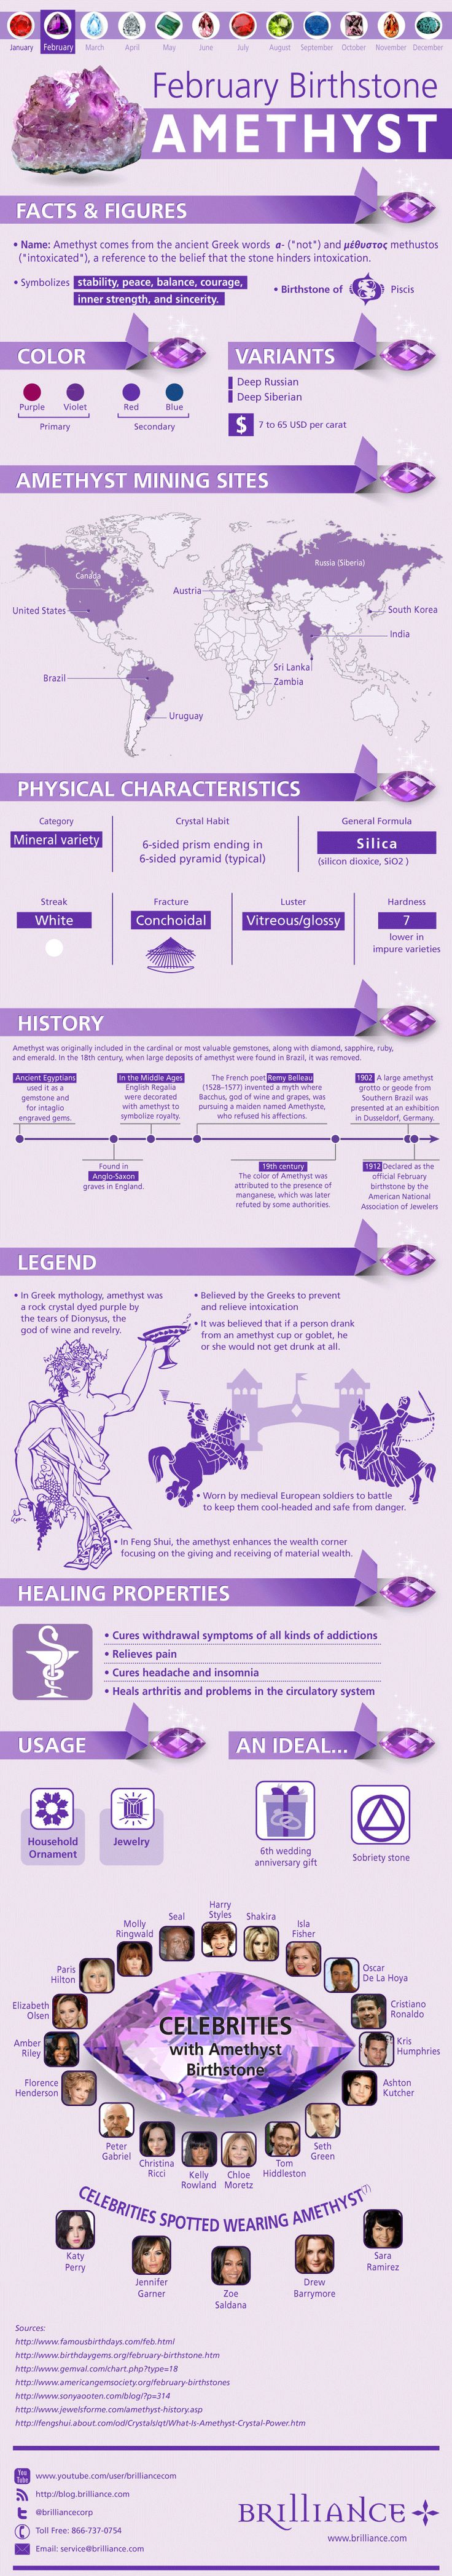 February babies, how much do you really know about your beautiful purple-hued birthstone? Discover more about the Amethyst on the blog: http://blog.brilliance.com/infographic/amethyst-the-february-birthstone